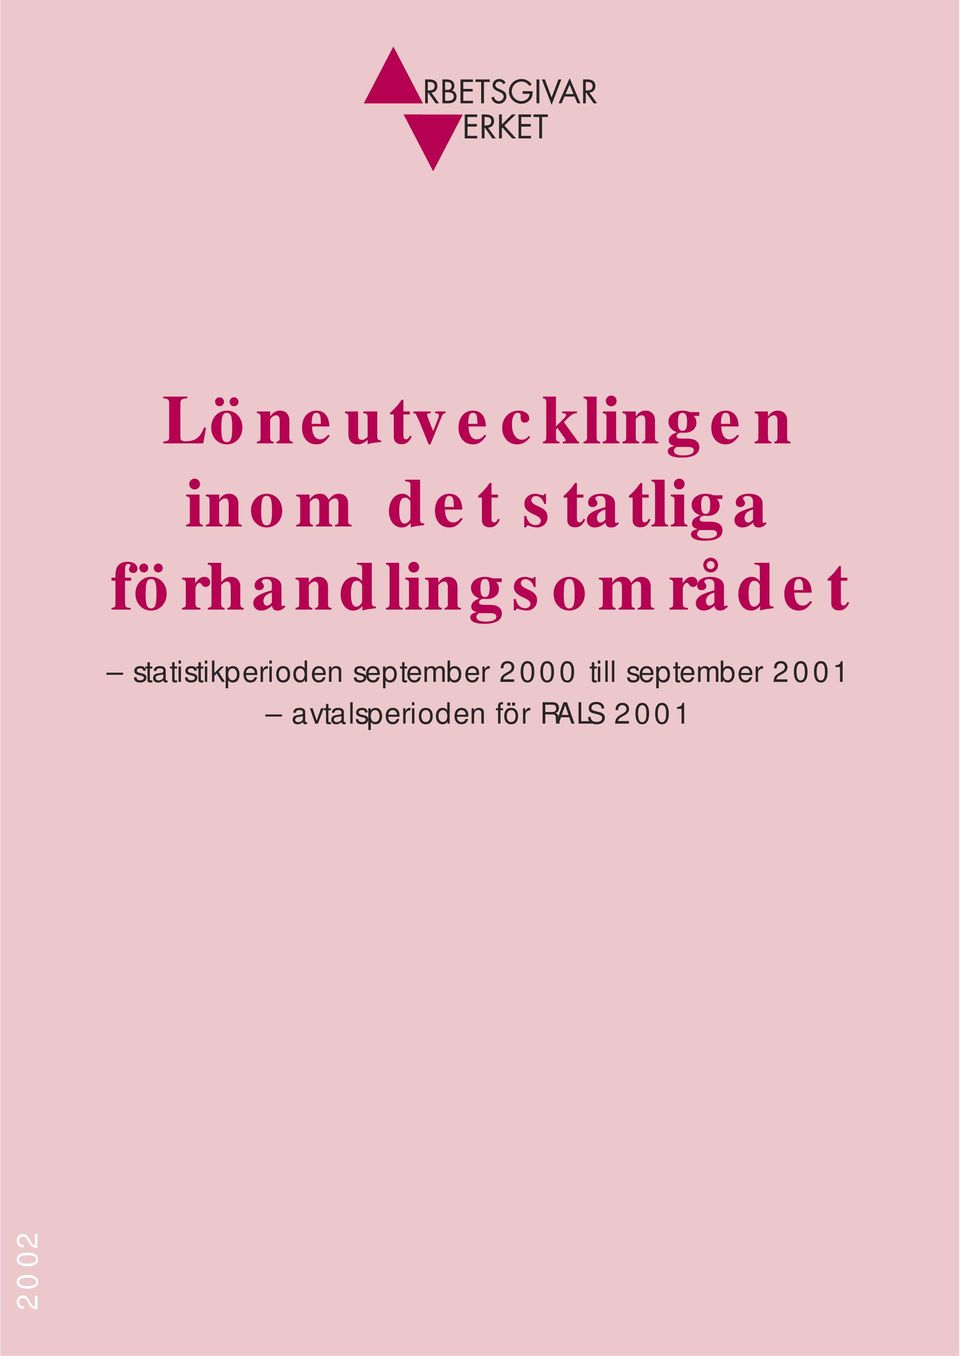 statistikperioden september 2000